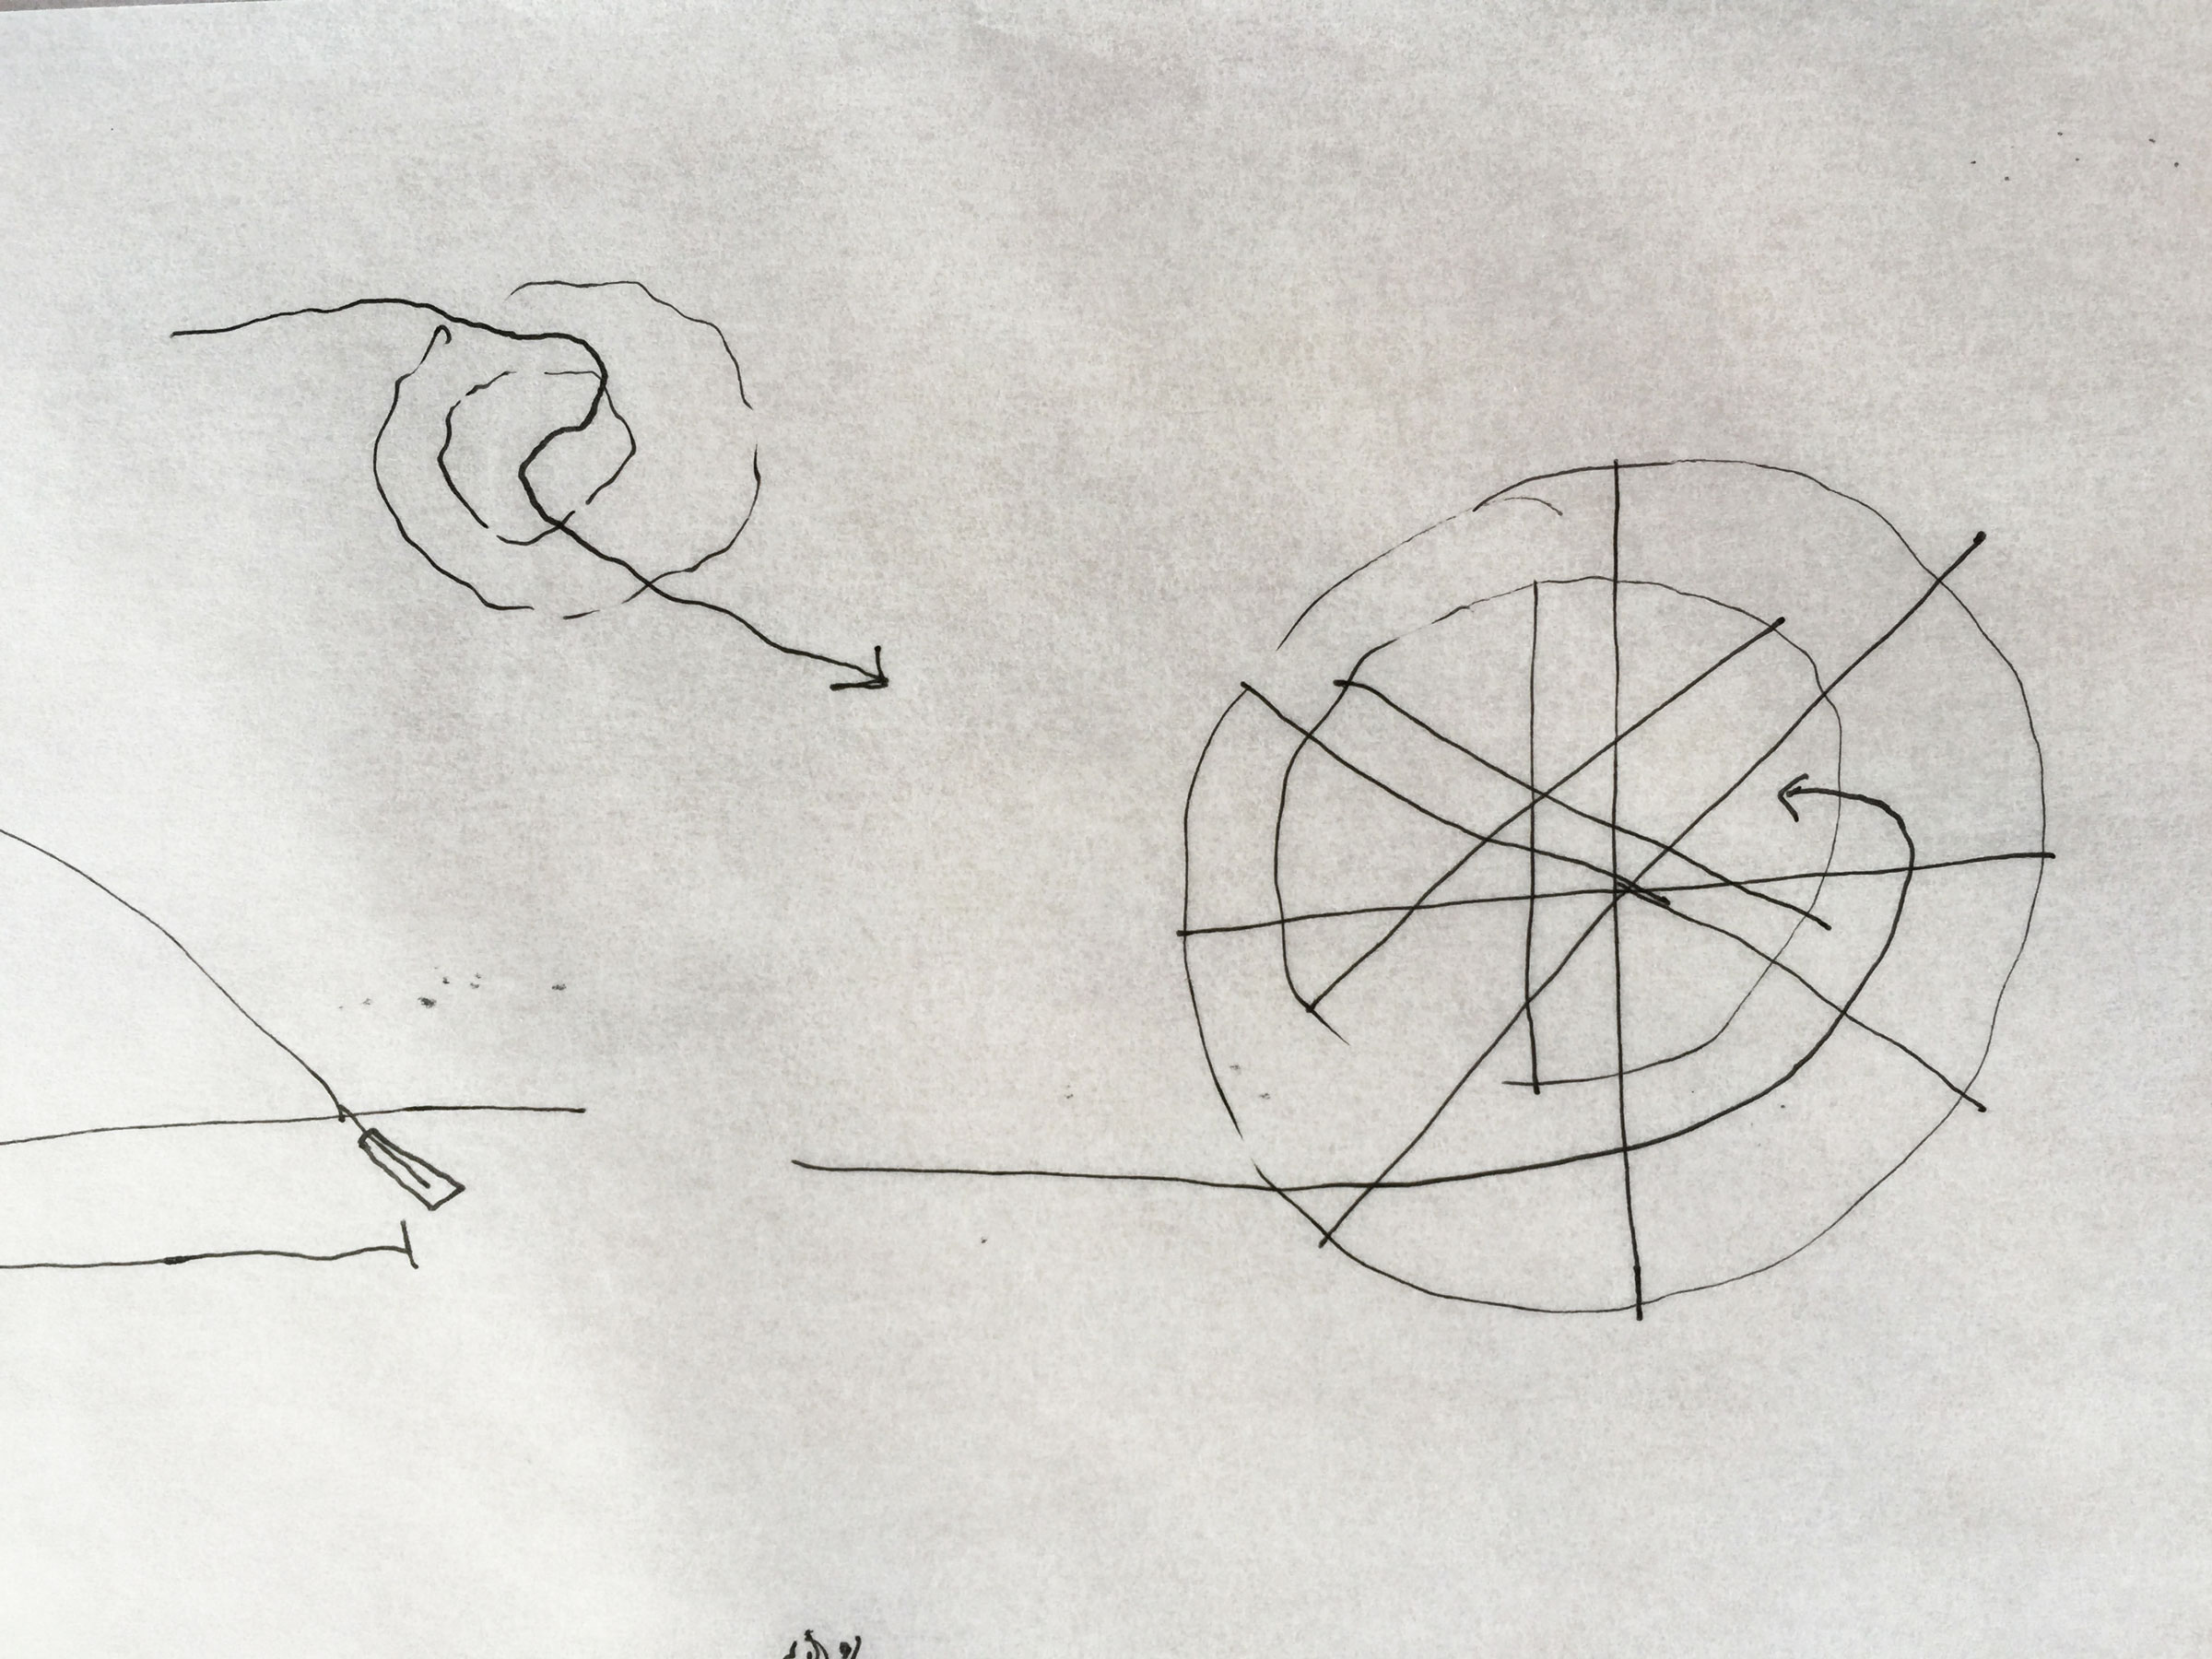 Copy of One enters and goes out along the space in between both domes.